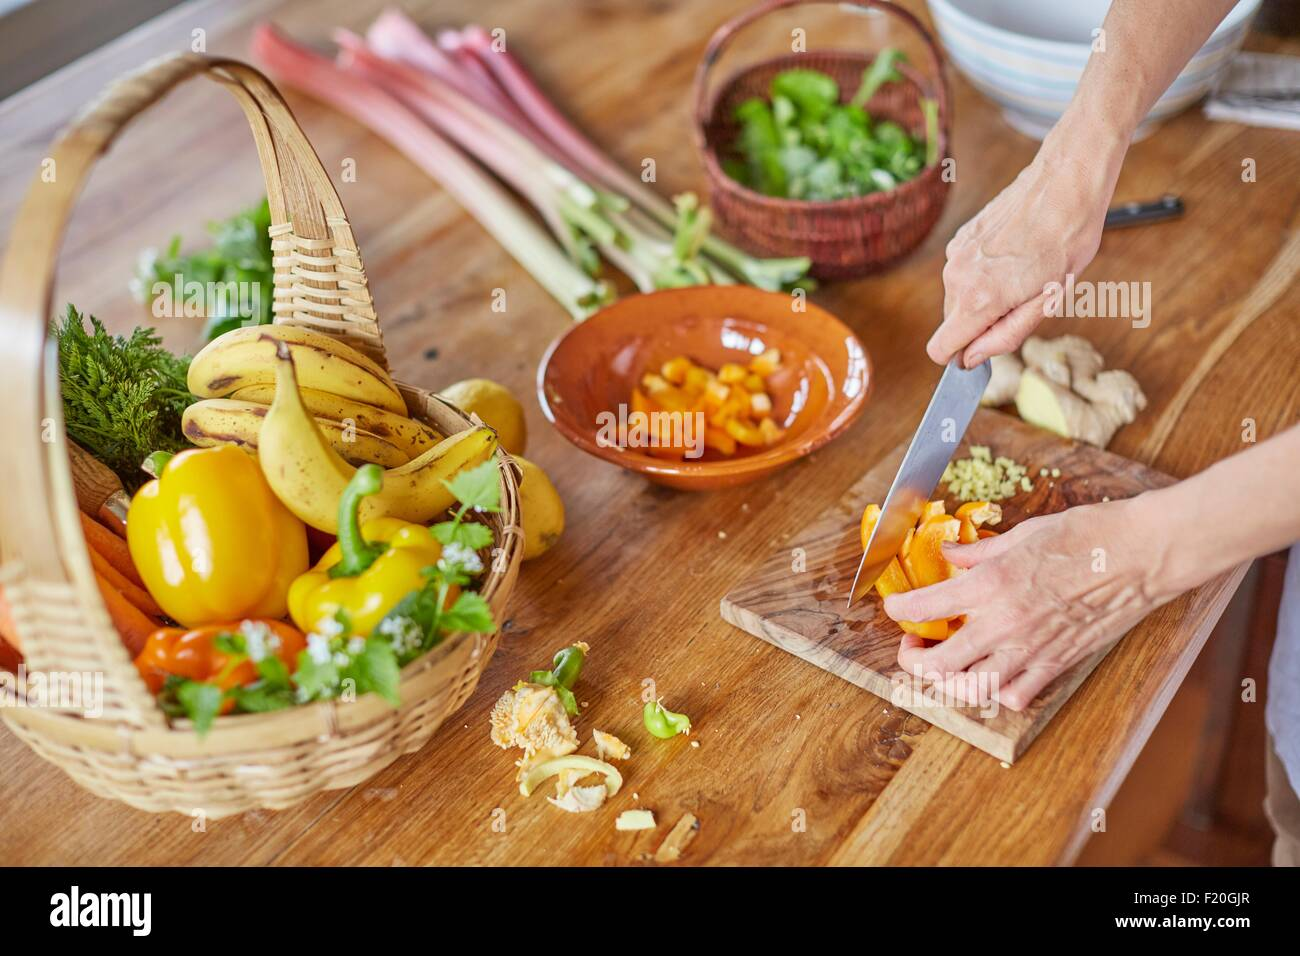 Mature woman chopping vegetables, focus on hands - Stock Image